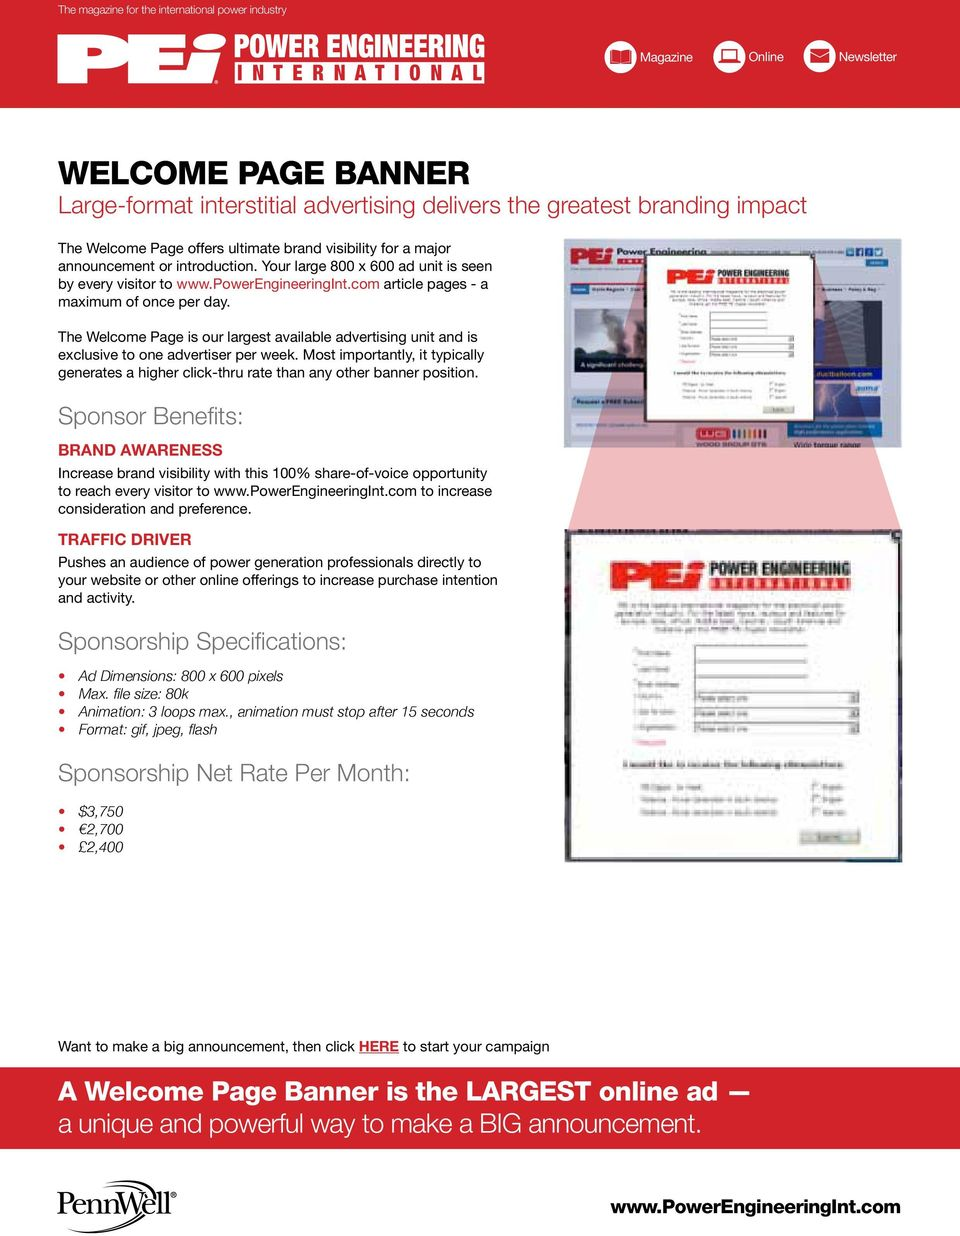 The Welcome Page is our largest available advertising unit and is exclusive to one advertiser per week.